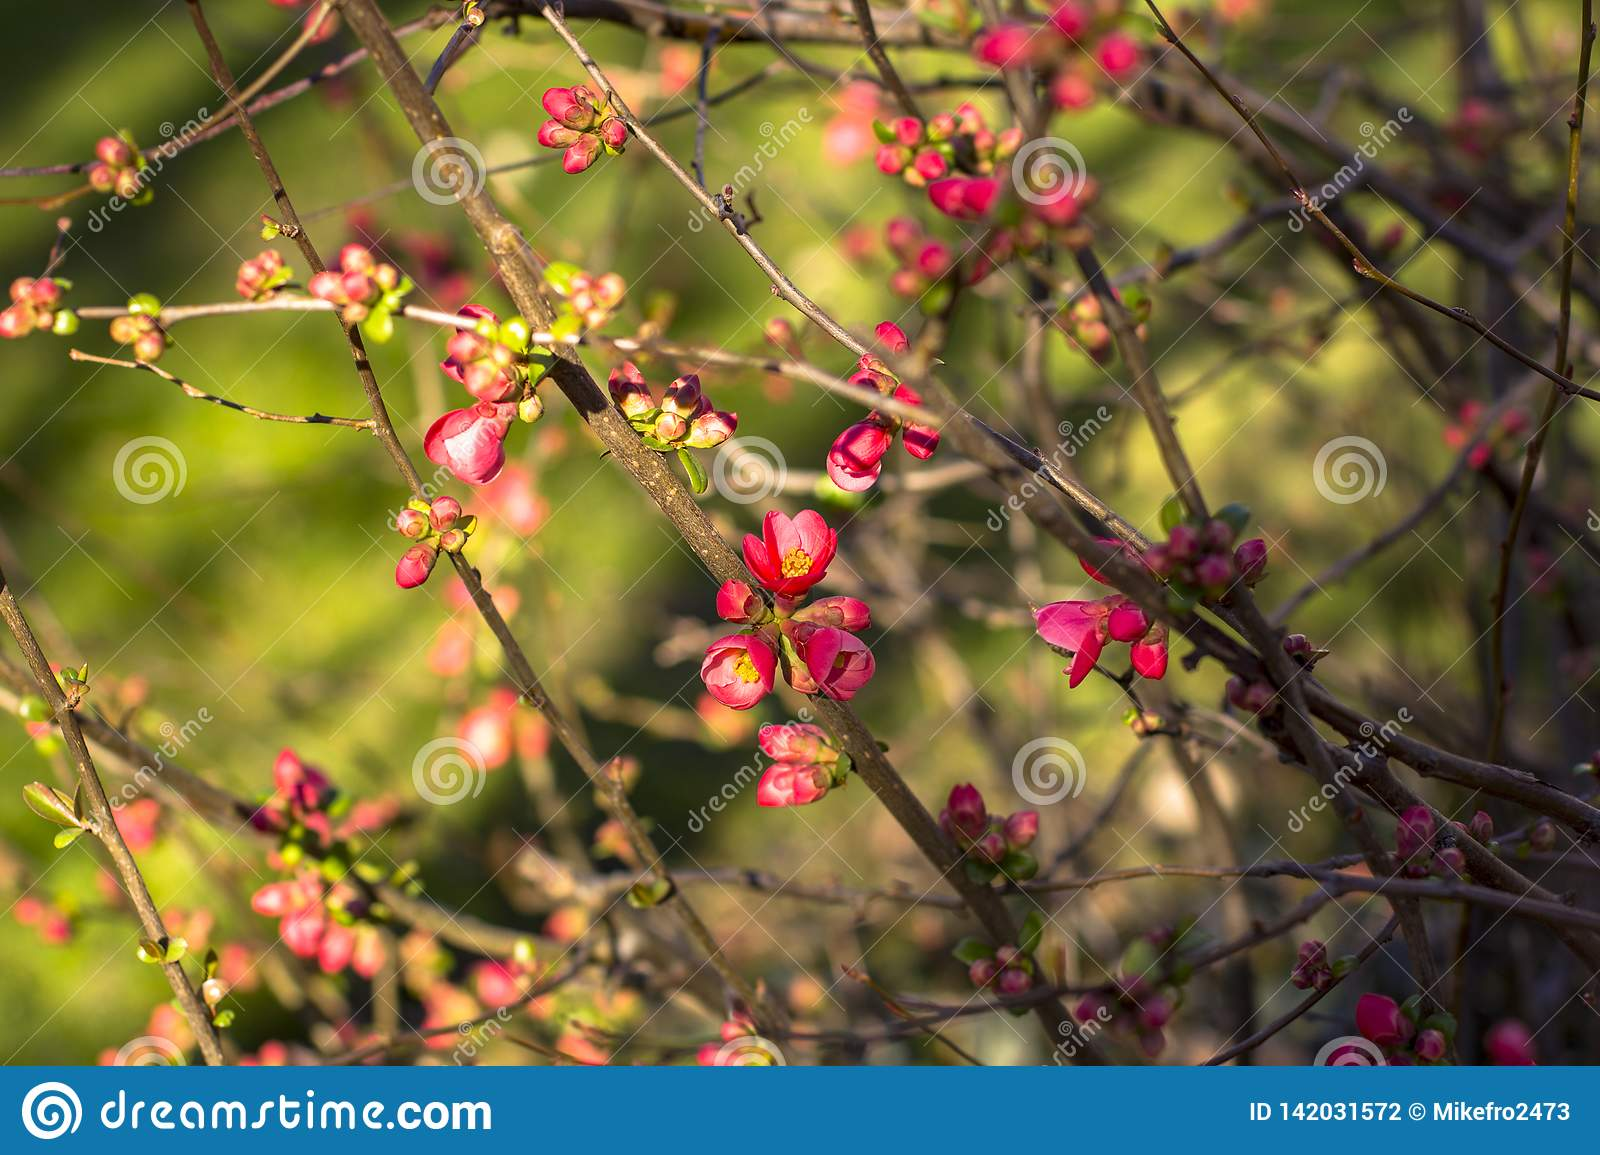 Flowering cherry branches, in early spring. Deep blurred background